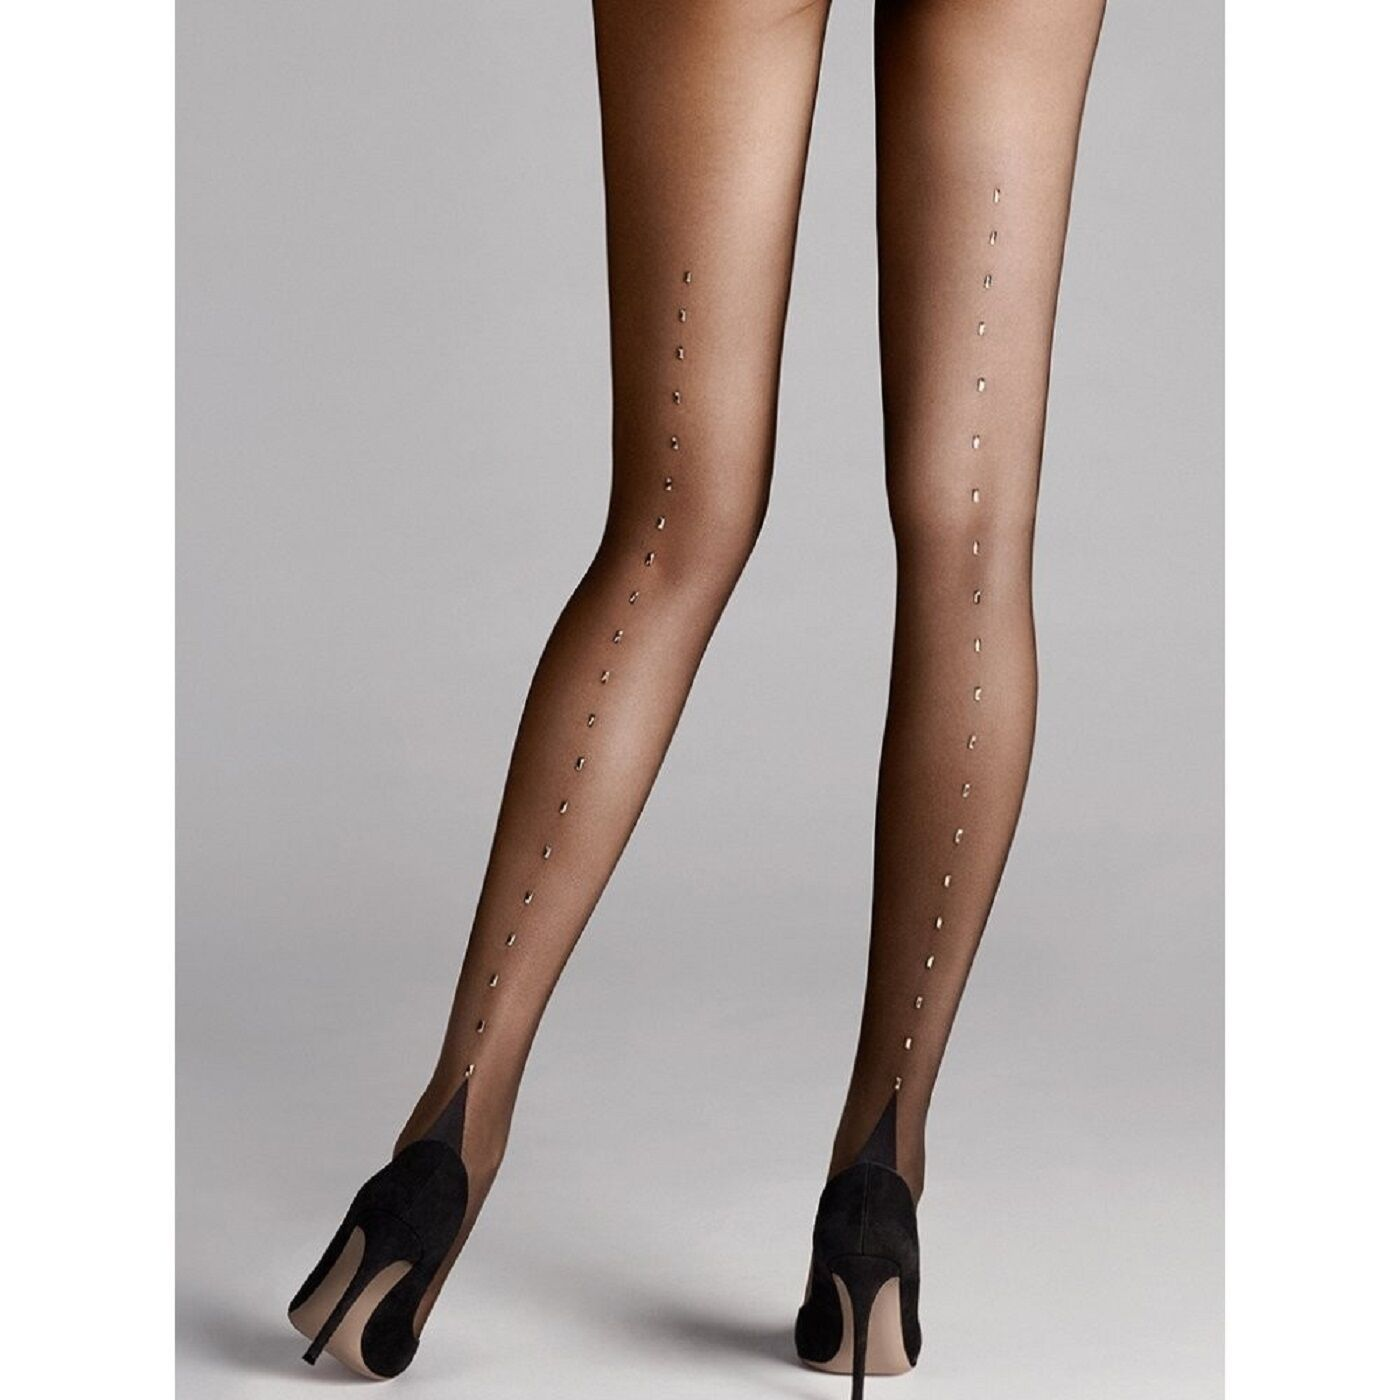 Wolford Paris Swarovski Crystal Tights